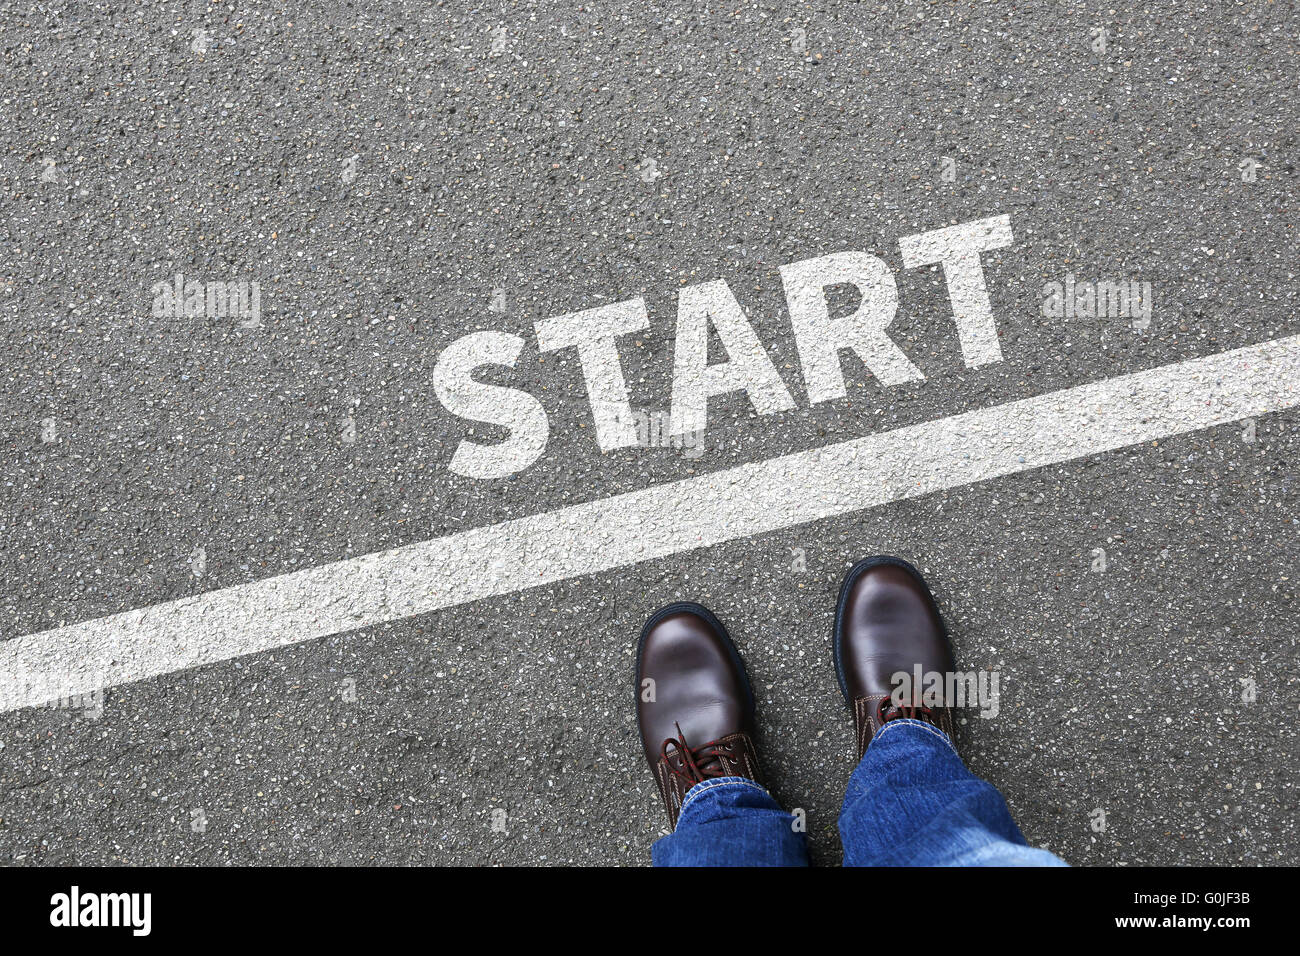 Start starting running race begin beginning businessman business man concept career goals motivation vision - Stock Image